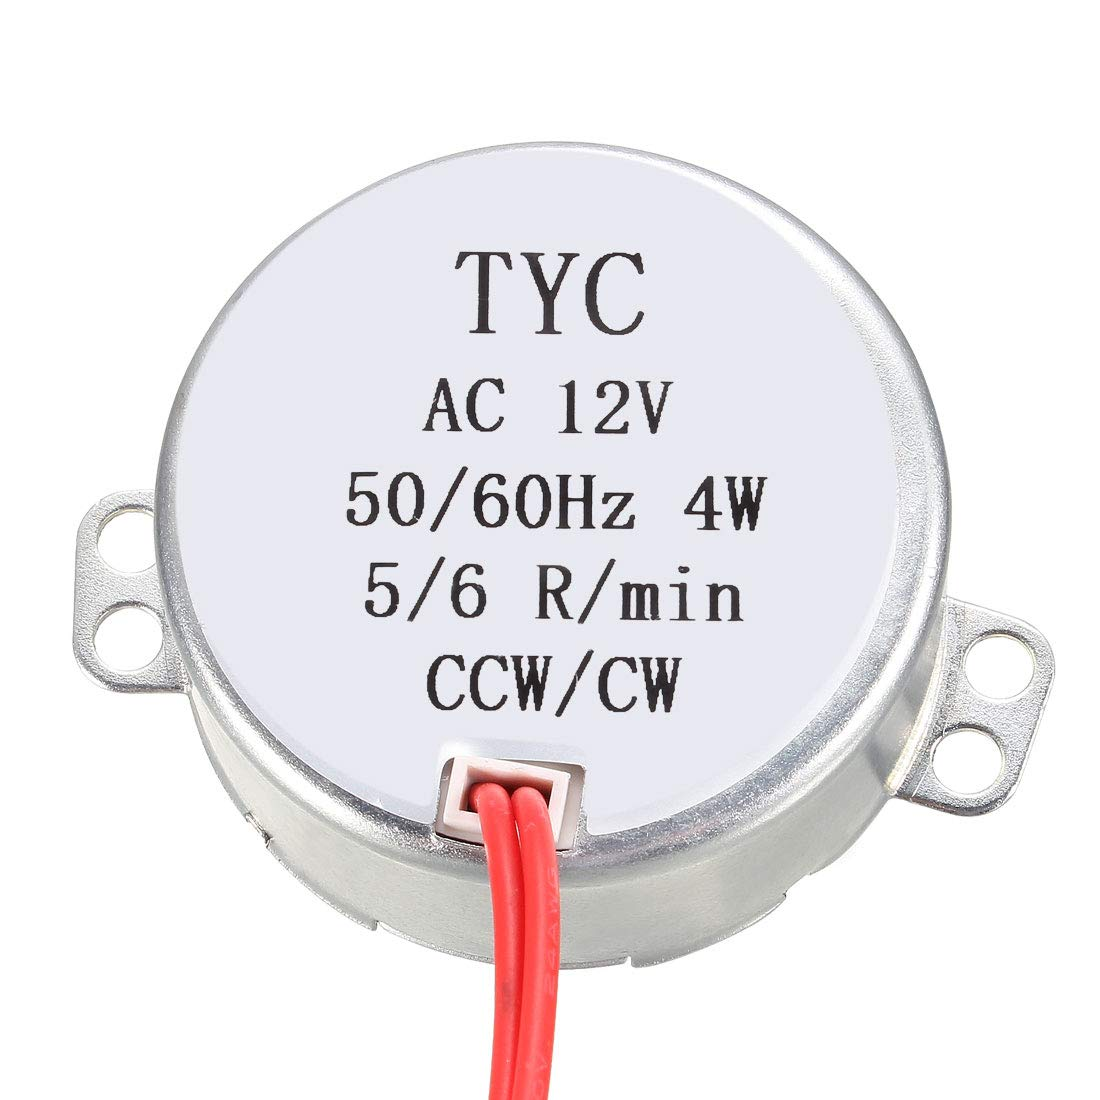 Turntable Motor AC 12V 50-60Hz CCW//CW 4W 30-36RPM uxcell Electric Synchronous Synchron Motor